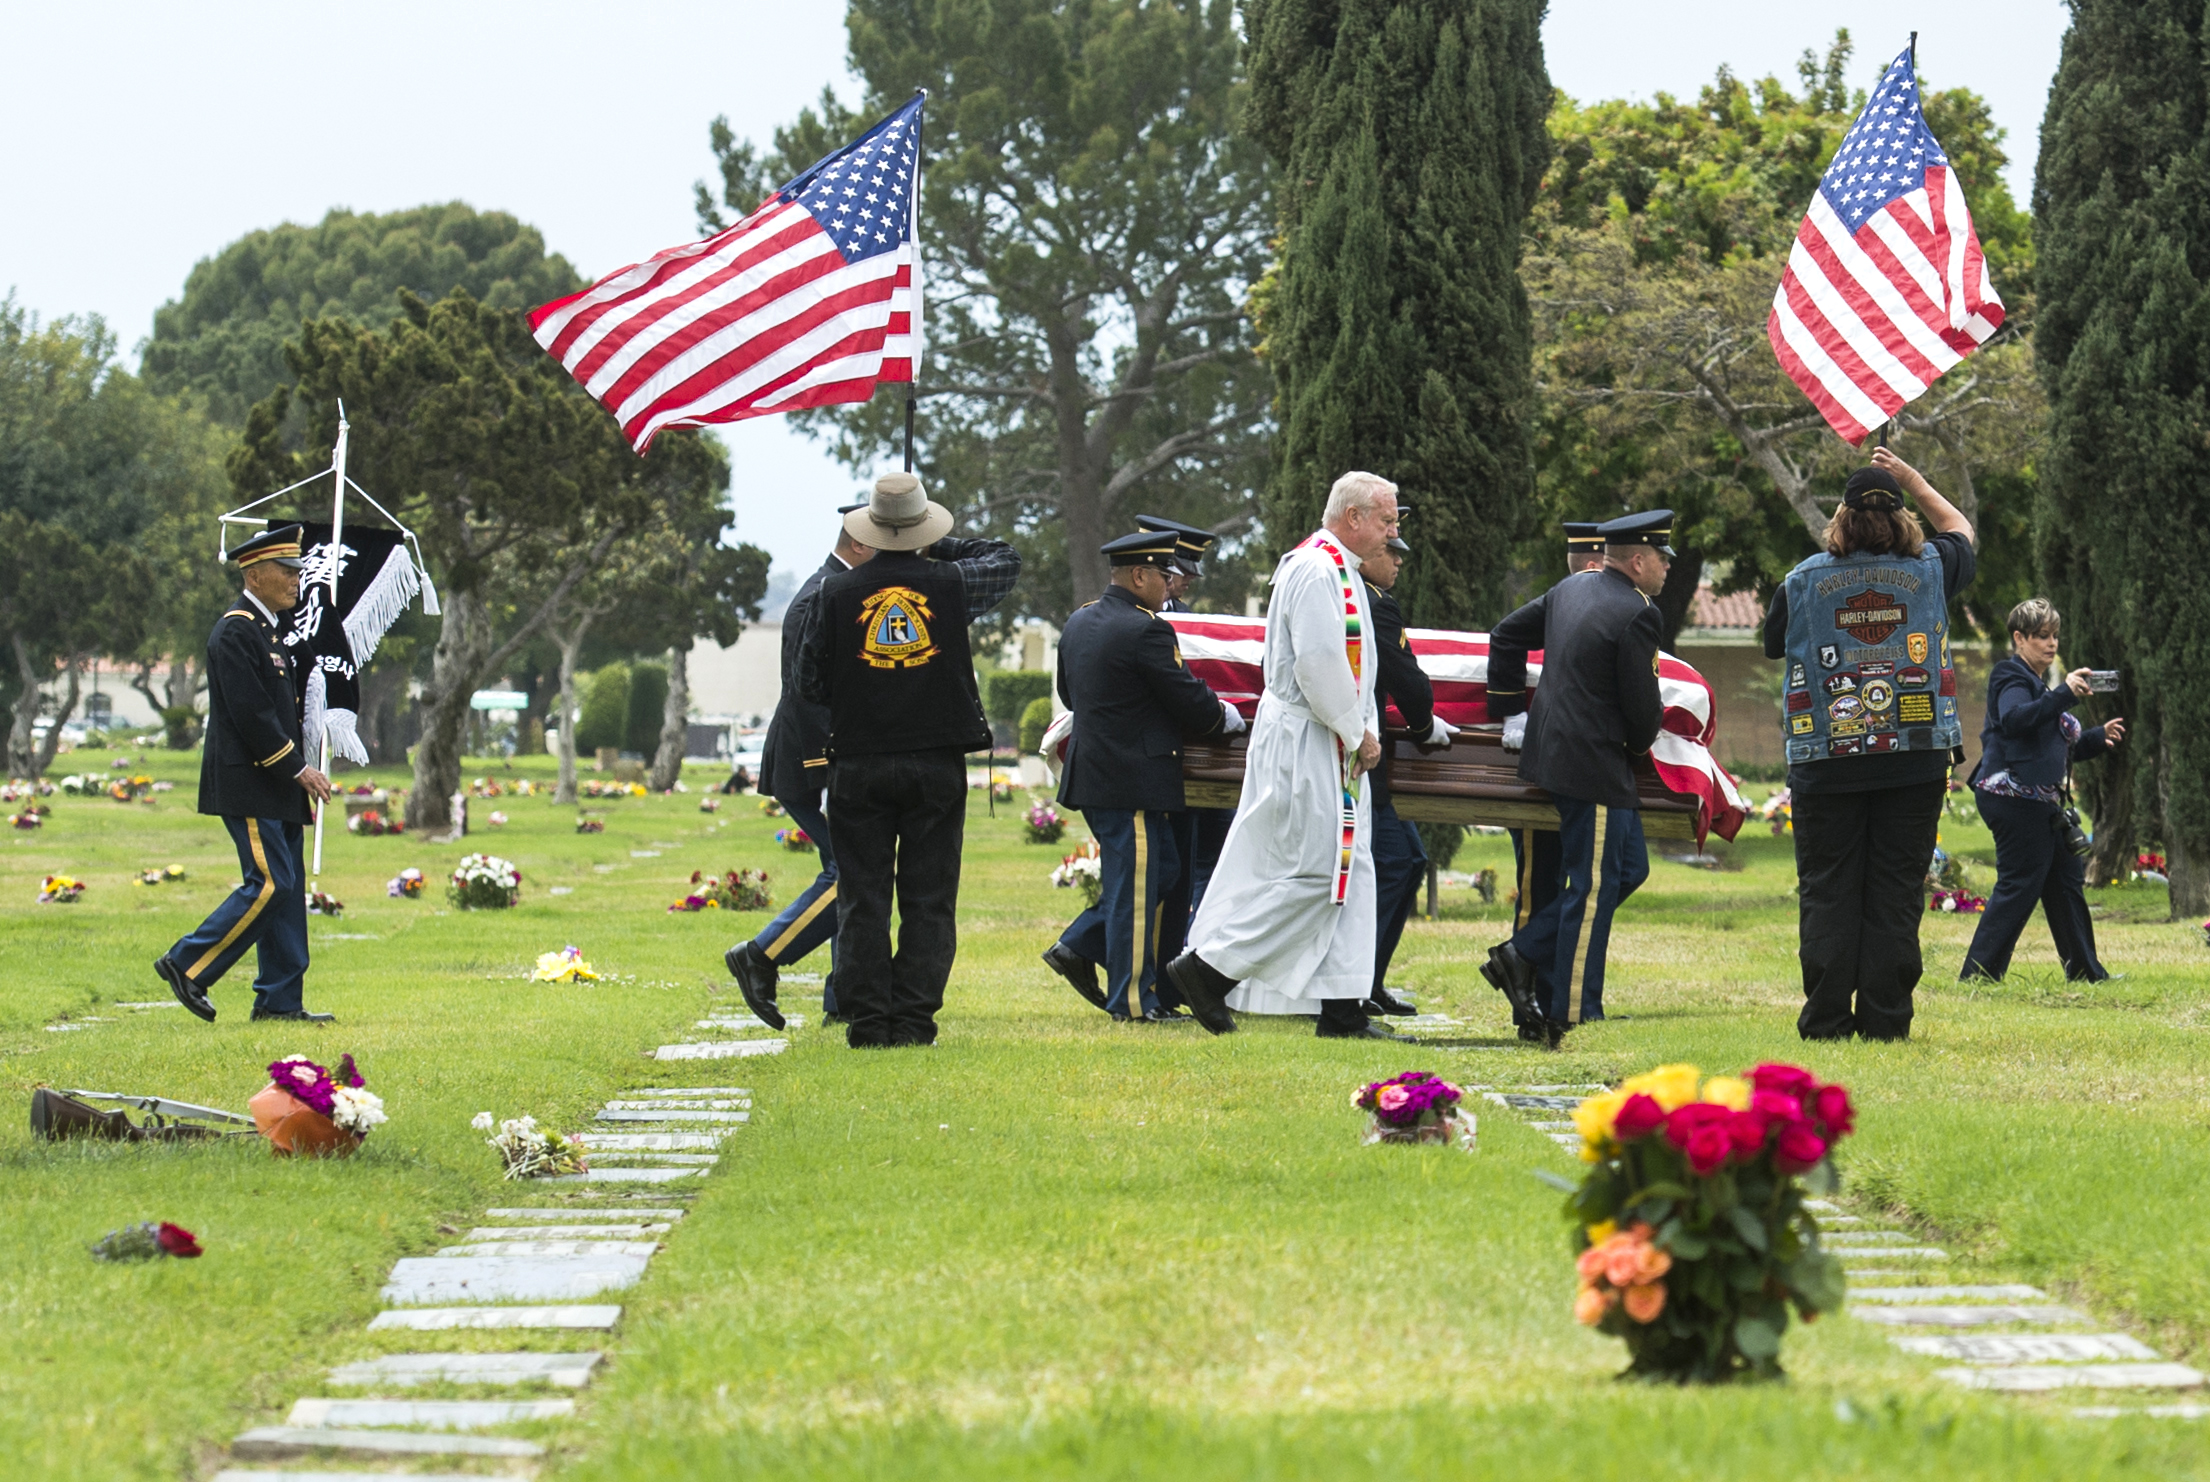 A military detail carries the casket of United States Army Cpl Albert E. Quintero, a soldier who went missing/died in the Korean War in action in Long Beach Monday, May 14, 2018. Quintero was buried with full military honors 67 years after he went missing in action.